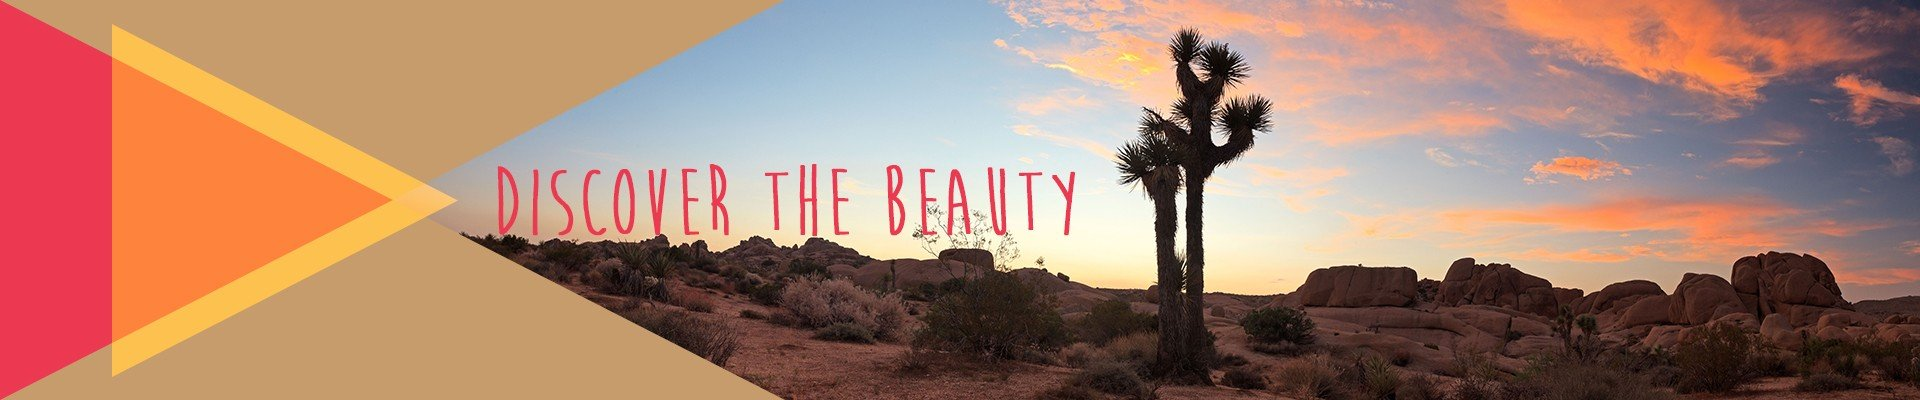 Discover the beauty - Joshua Tree National Park